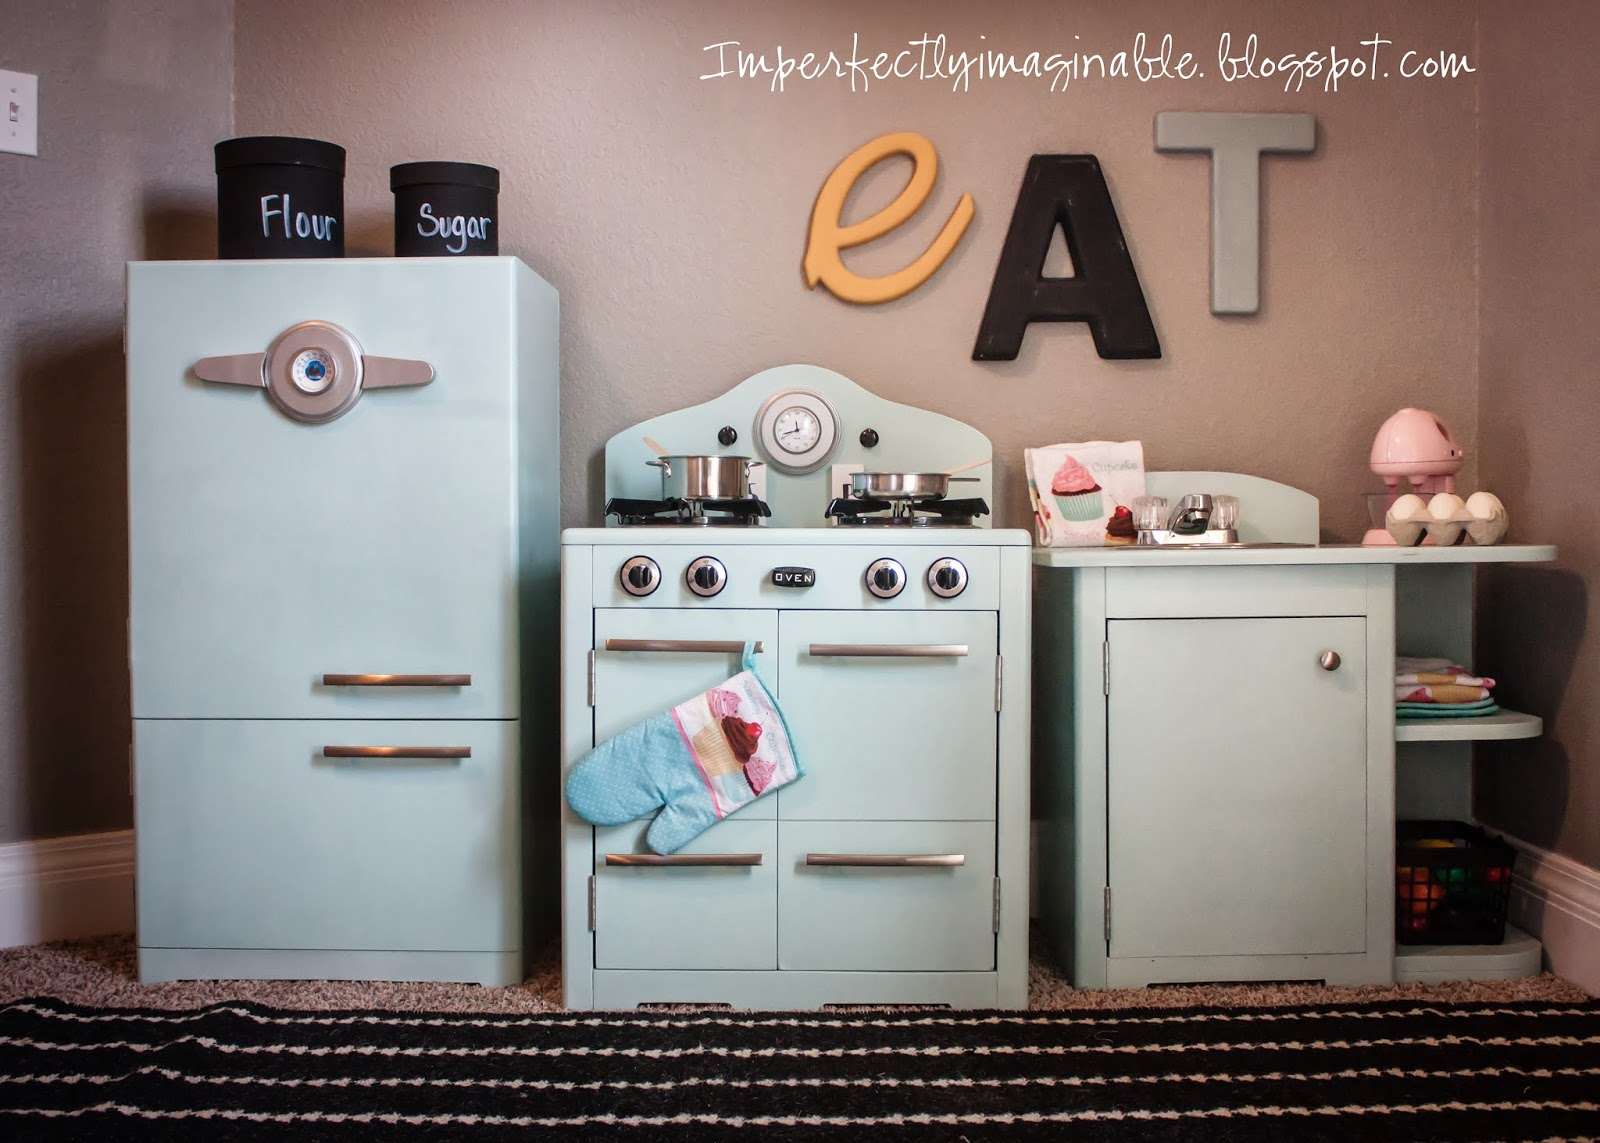 Pottery Barn Retro Kitchen Imperfectly Imaginable Pottery Barn Inspired Retro Kids Kitchen